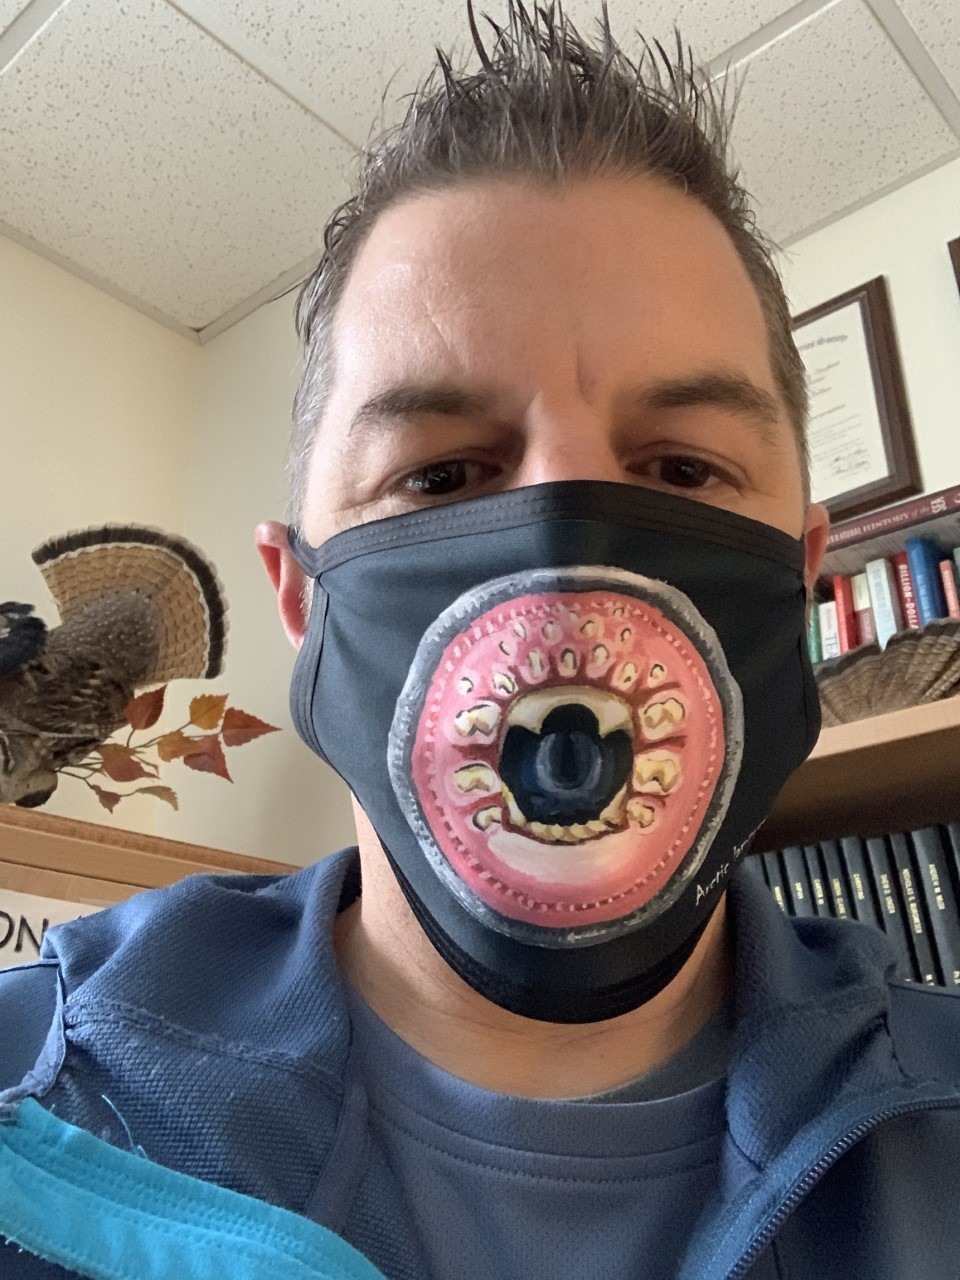 trent sutton in a lamprey mask